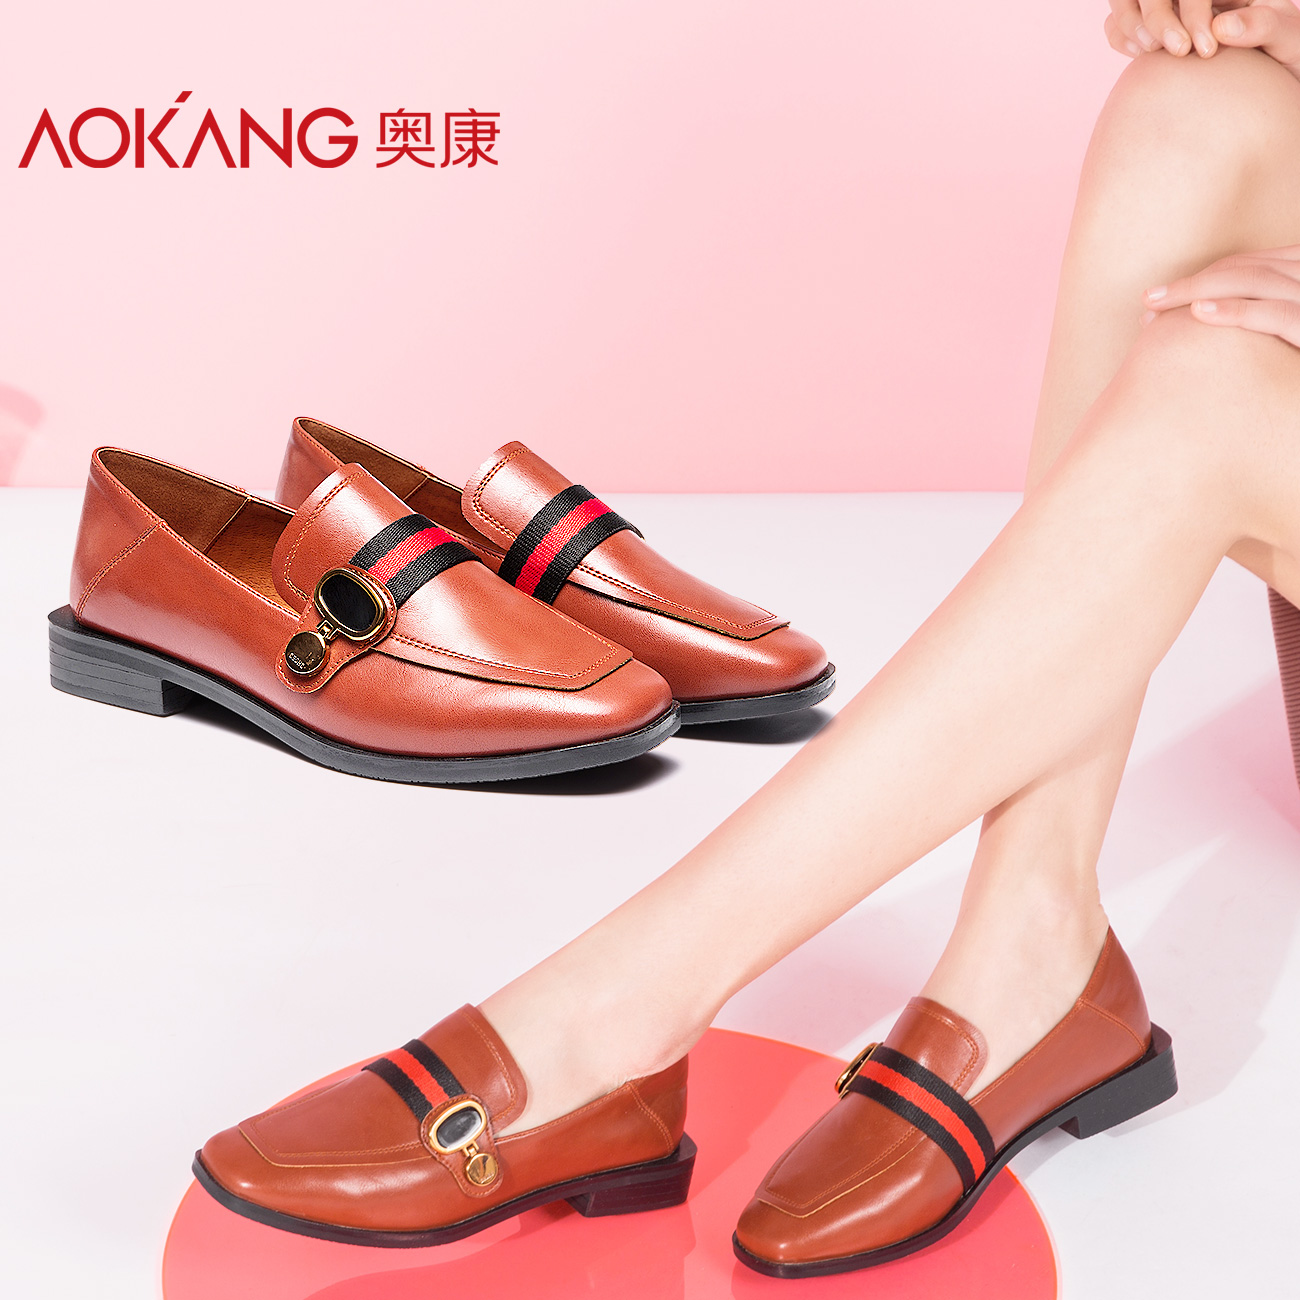 Aokang women's shoes small shoes Korean version of the square head flat fashion women's shoes 2018 new student trend single shoes